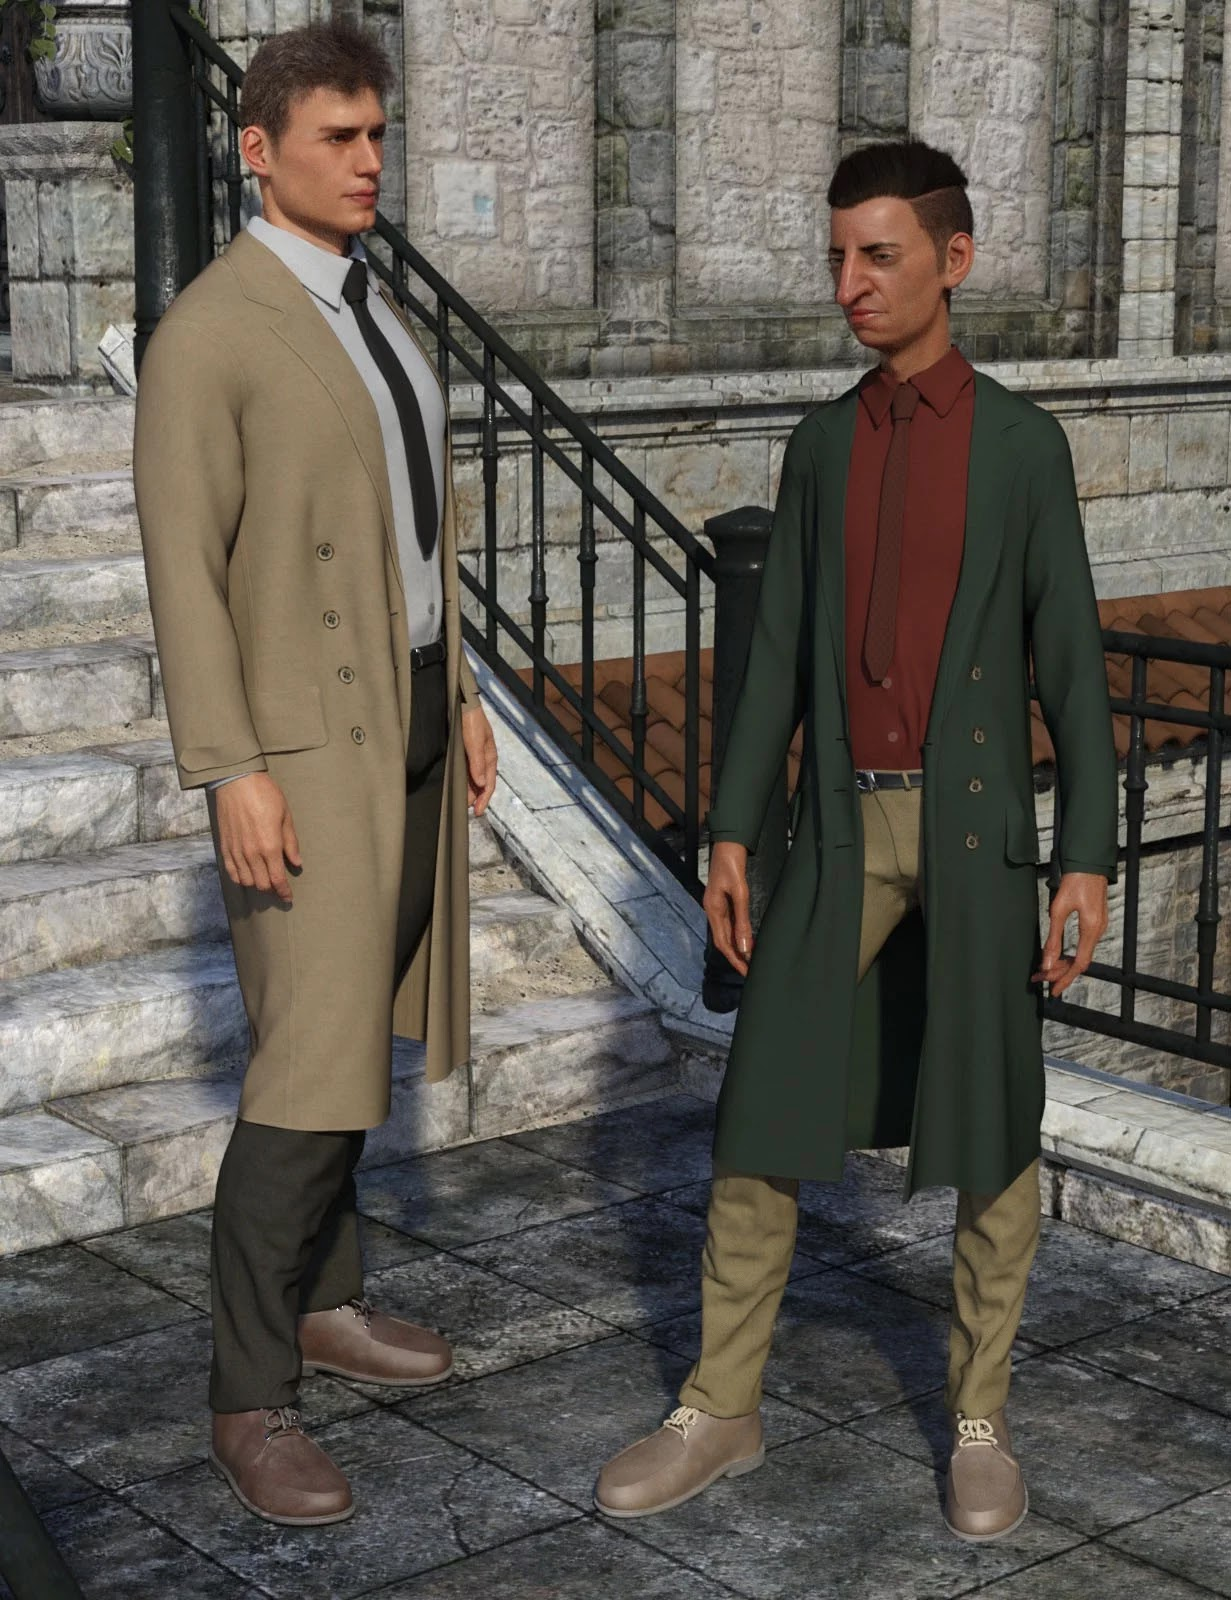 dForce Trench Coat Outfit for Genesis 8 Male(s)_DAZ3D下载站